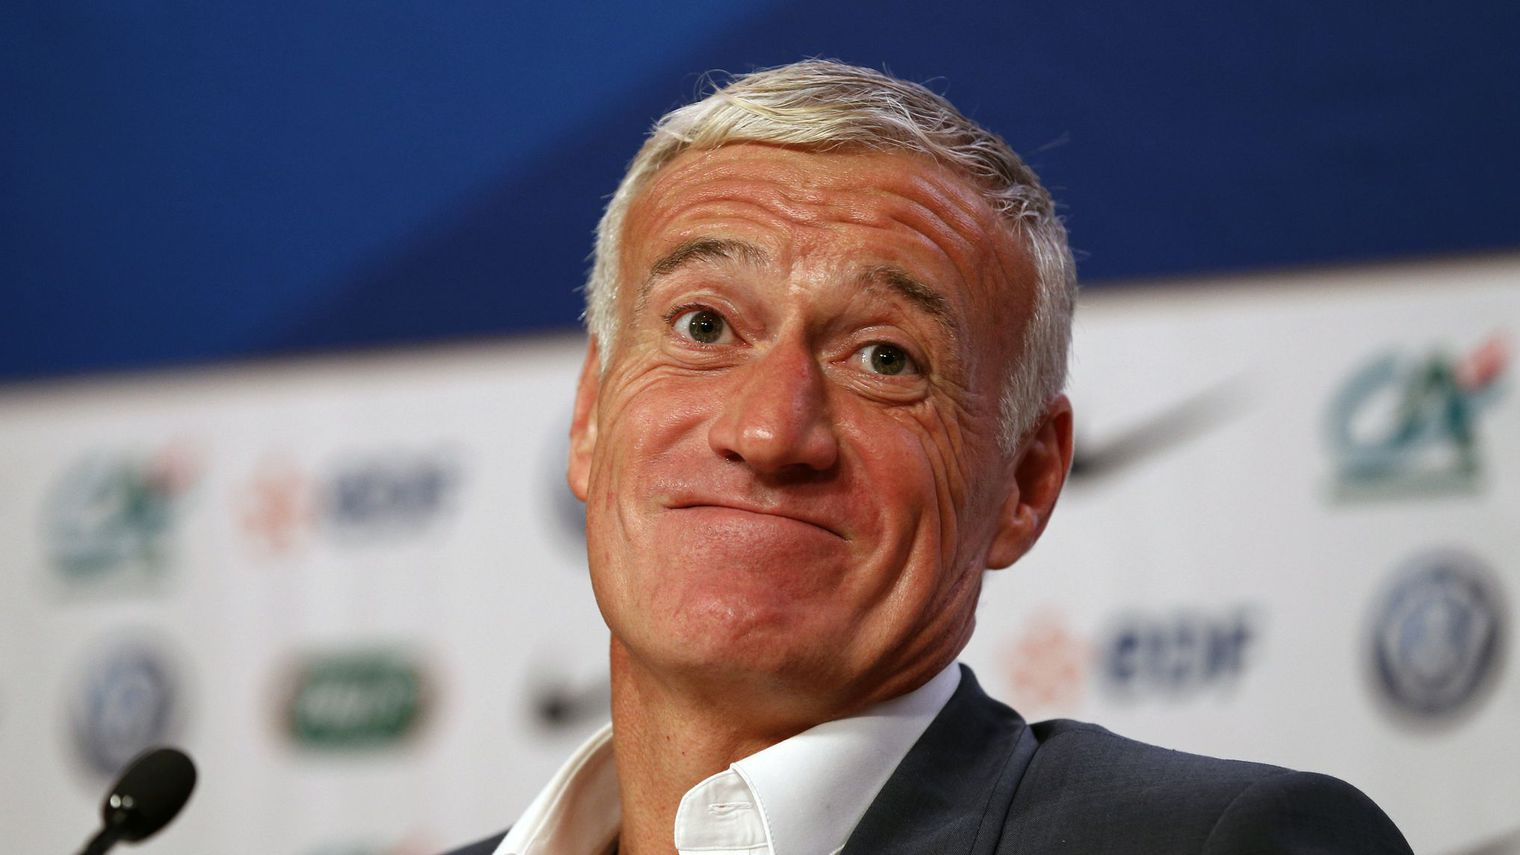 Didier Deschamps annonce que Mbappé change de club mais reste en Ligue 1